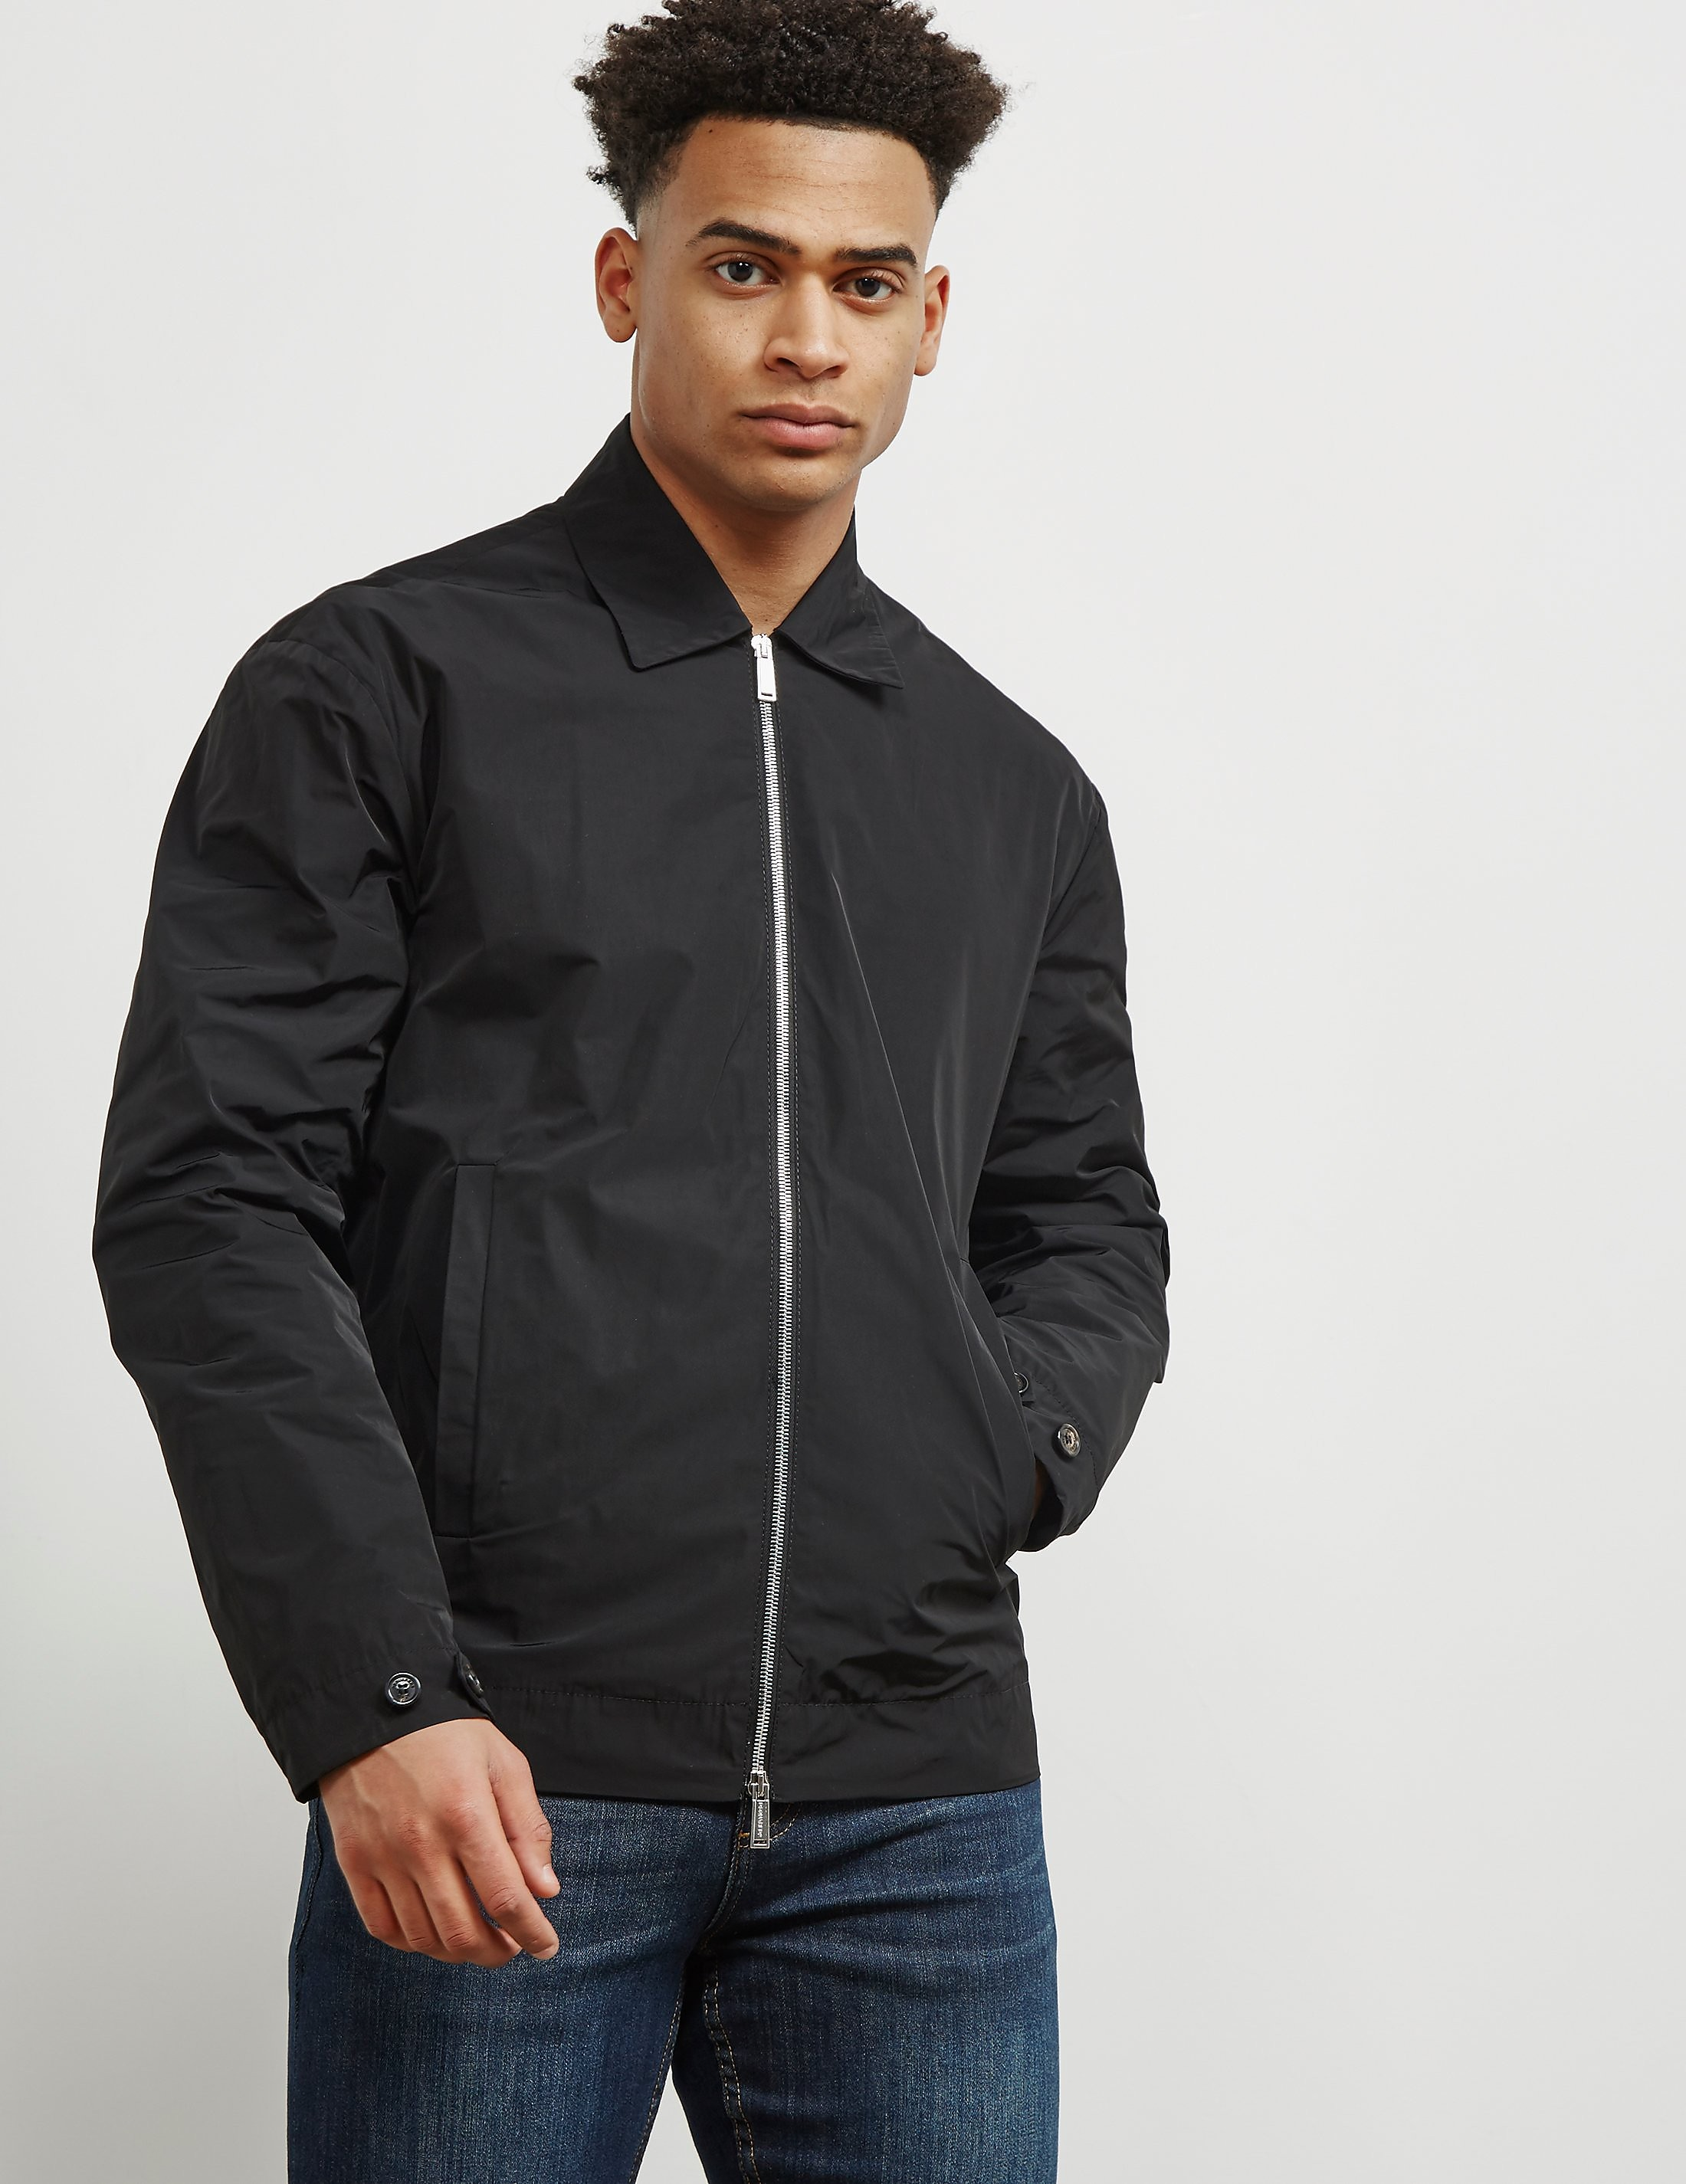 DSQUARED2 Manchester Lightweight Bomber Jacket